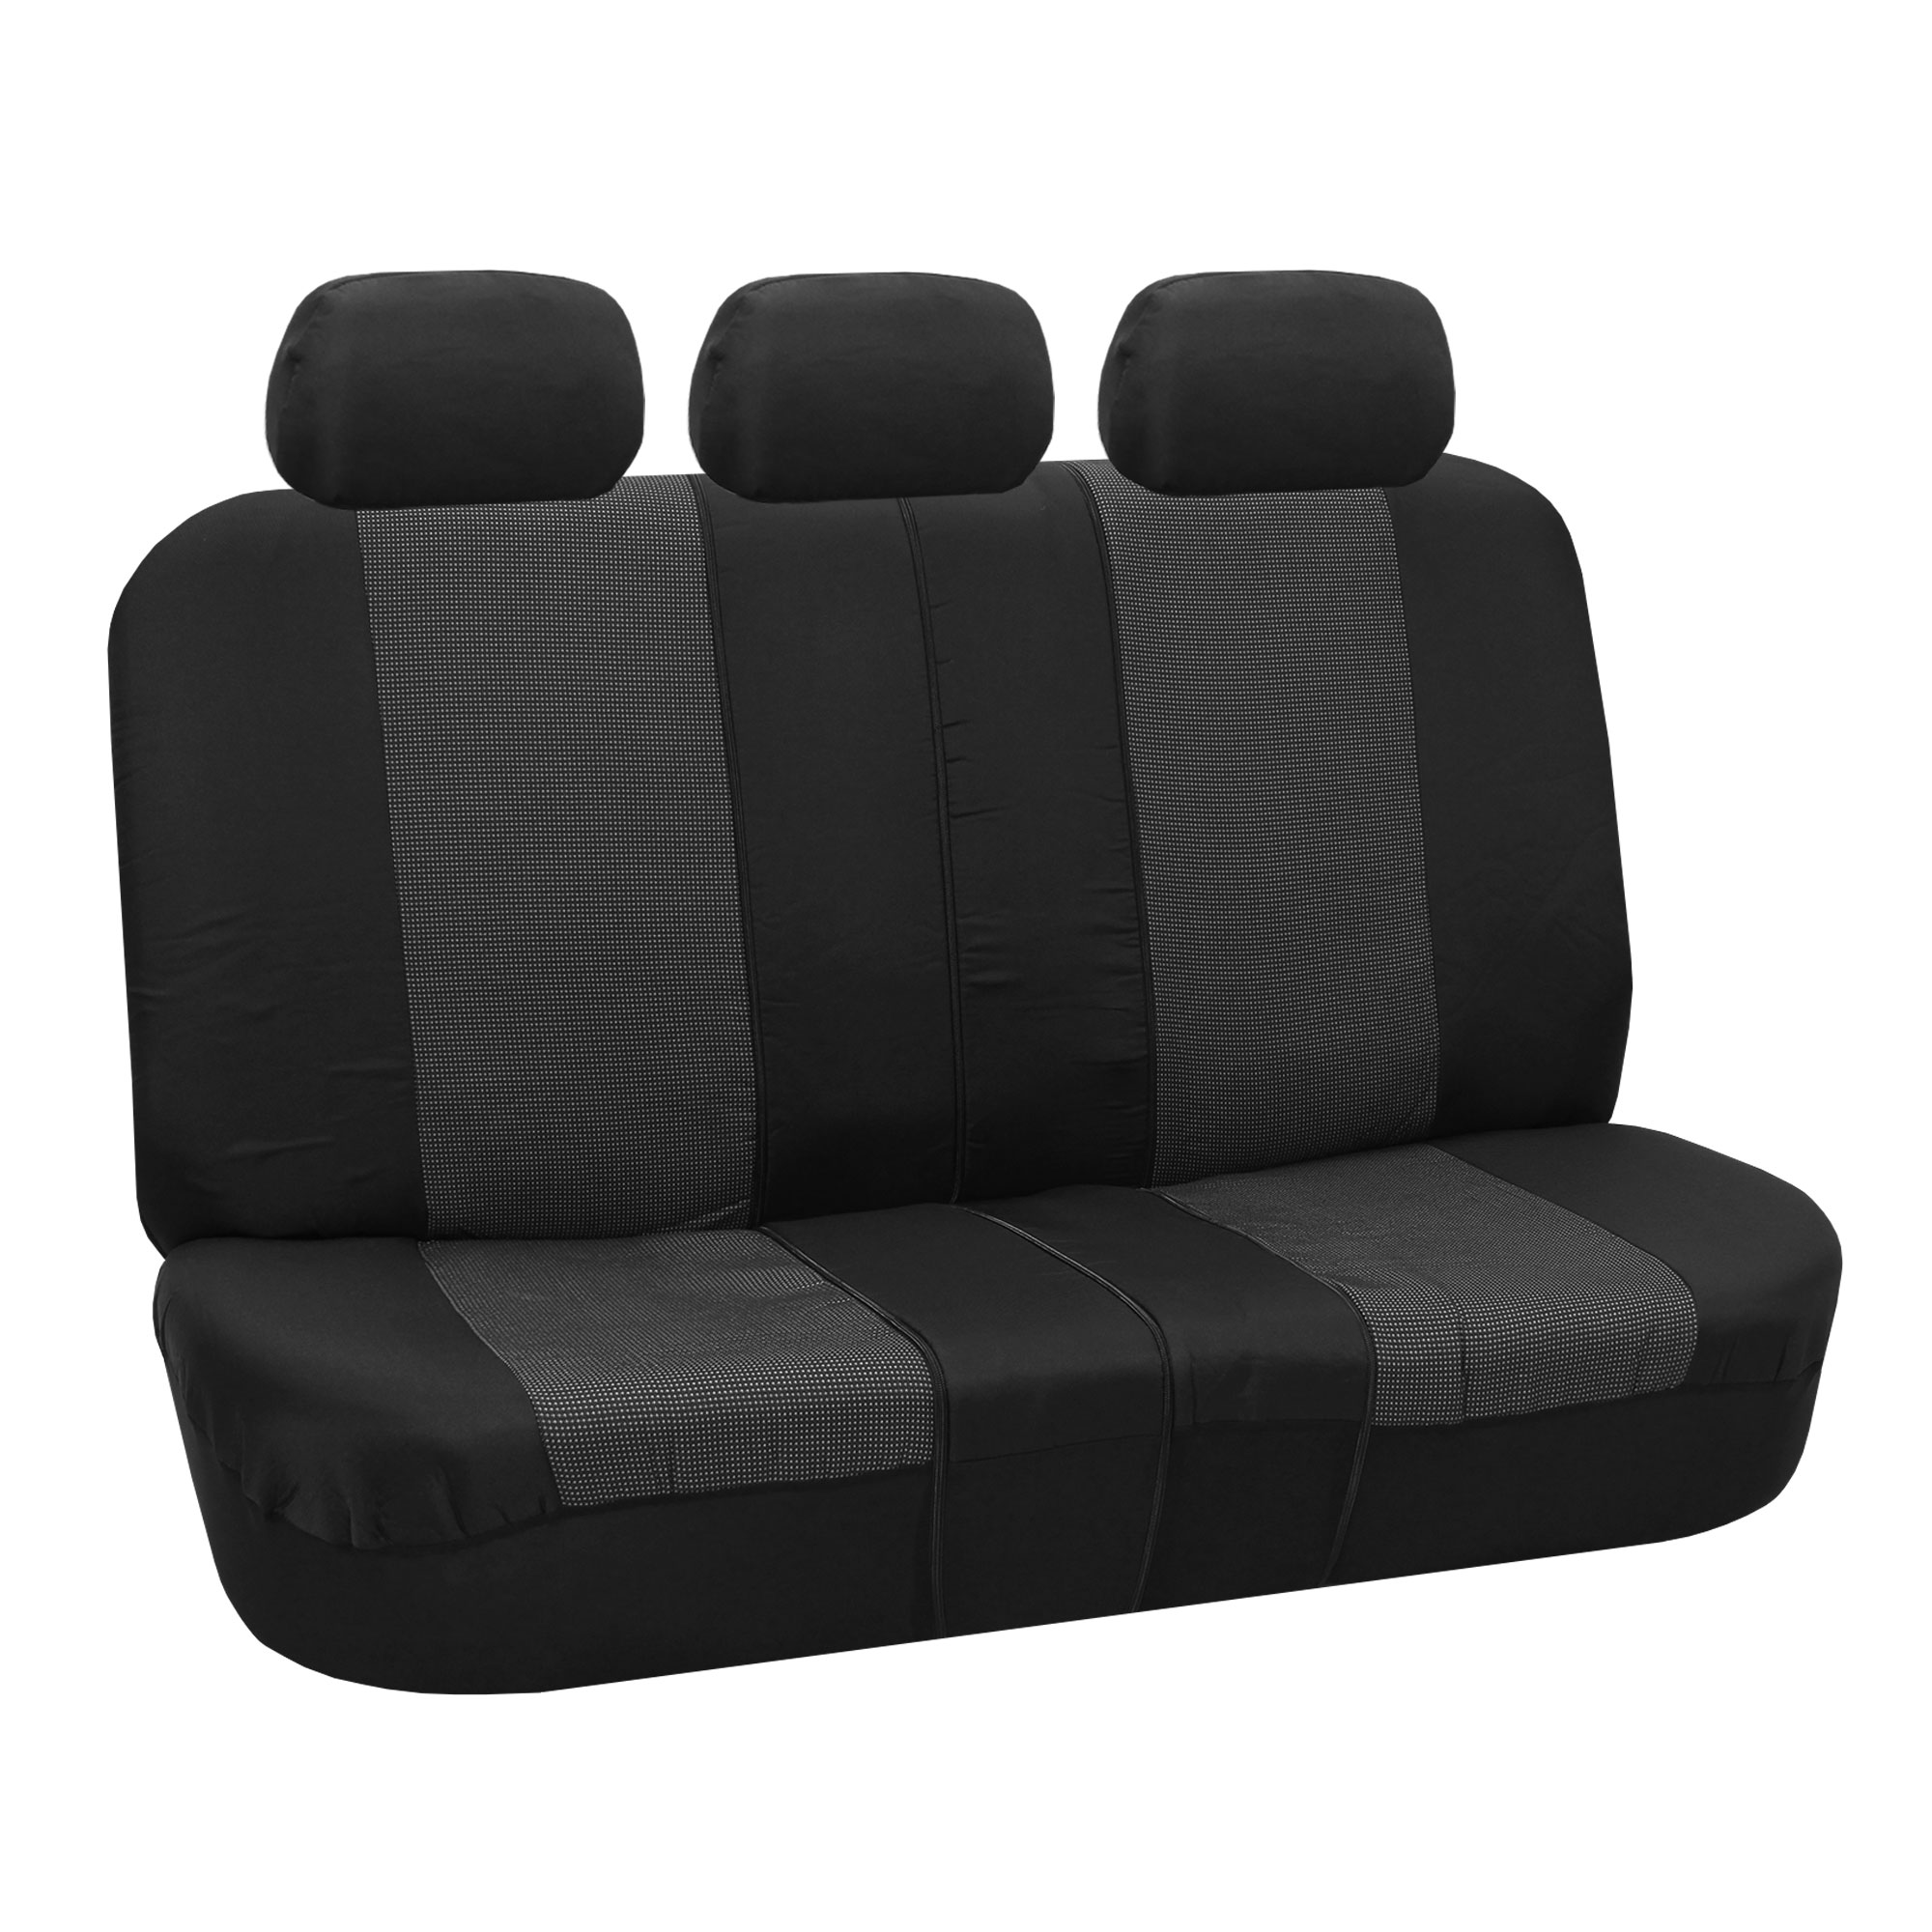 gray car seat covers set for auto w floor mat. Black Bedroom Furniture Sets. Home Design Ideas